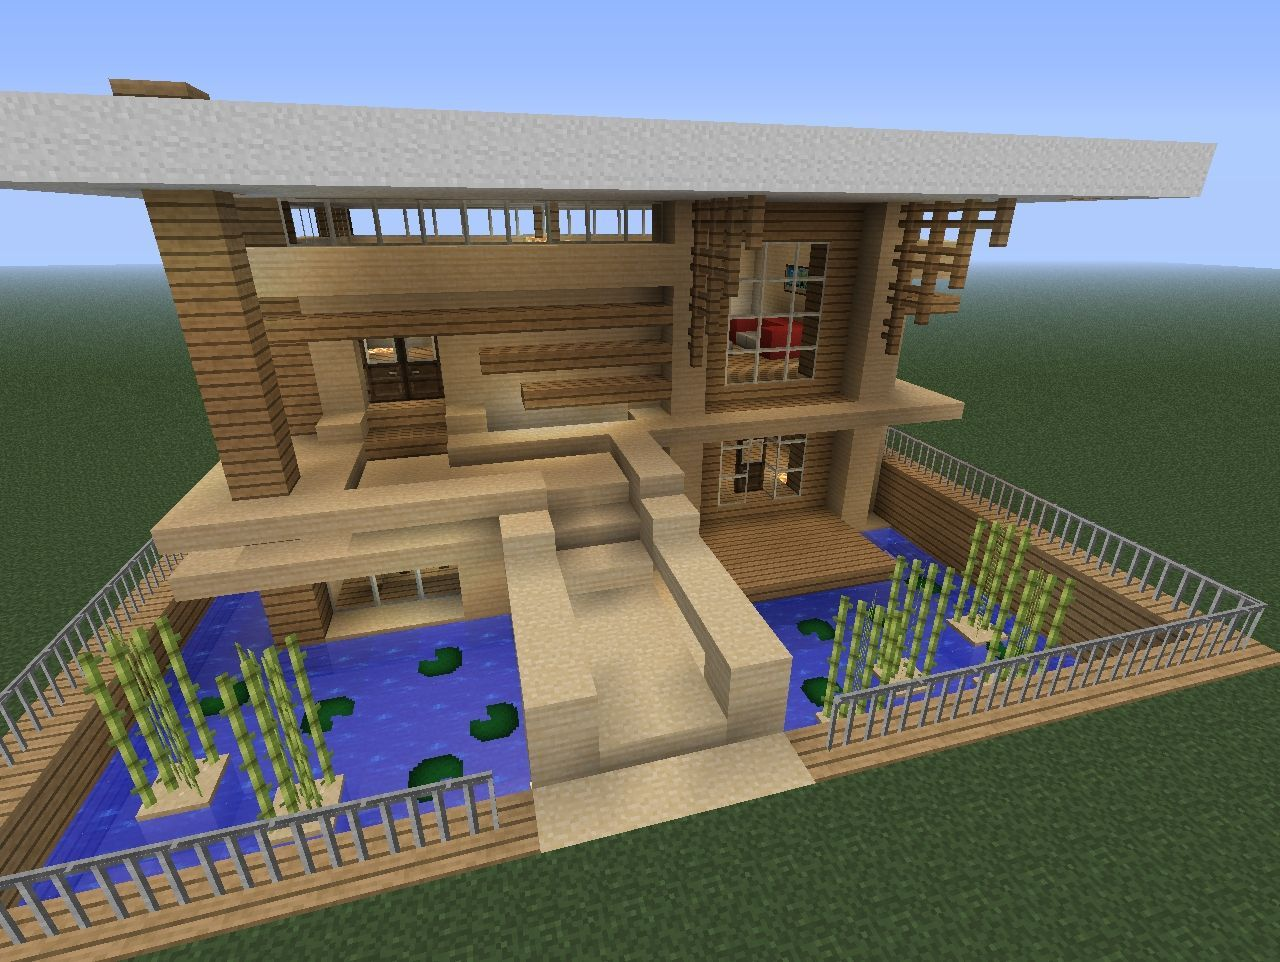 1000 ideas about minecraft houses on pinterest minecraft minecraft ideas and cool minecraft houses - Minecraft Design Ideas